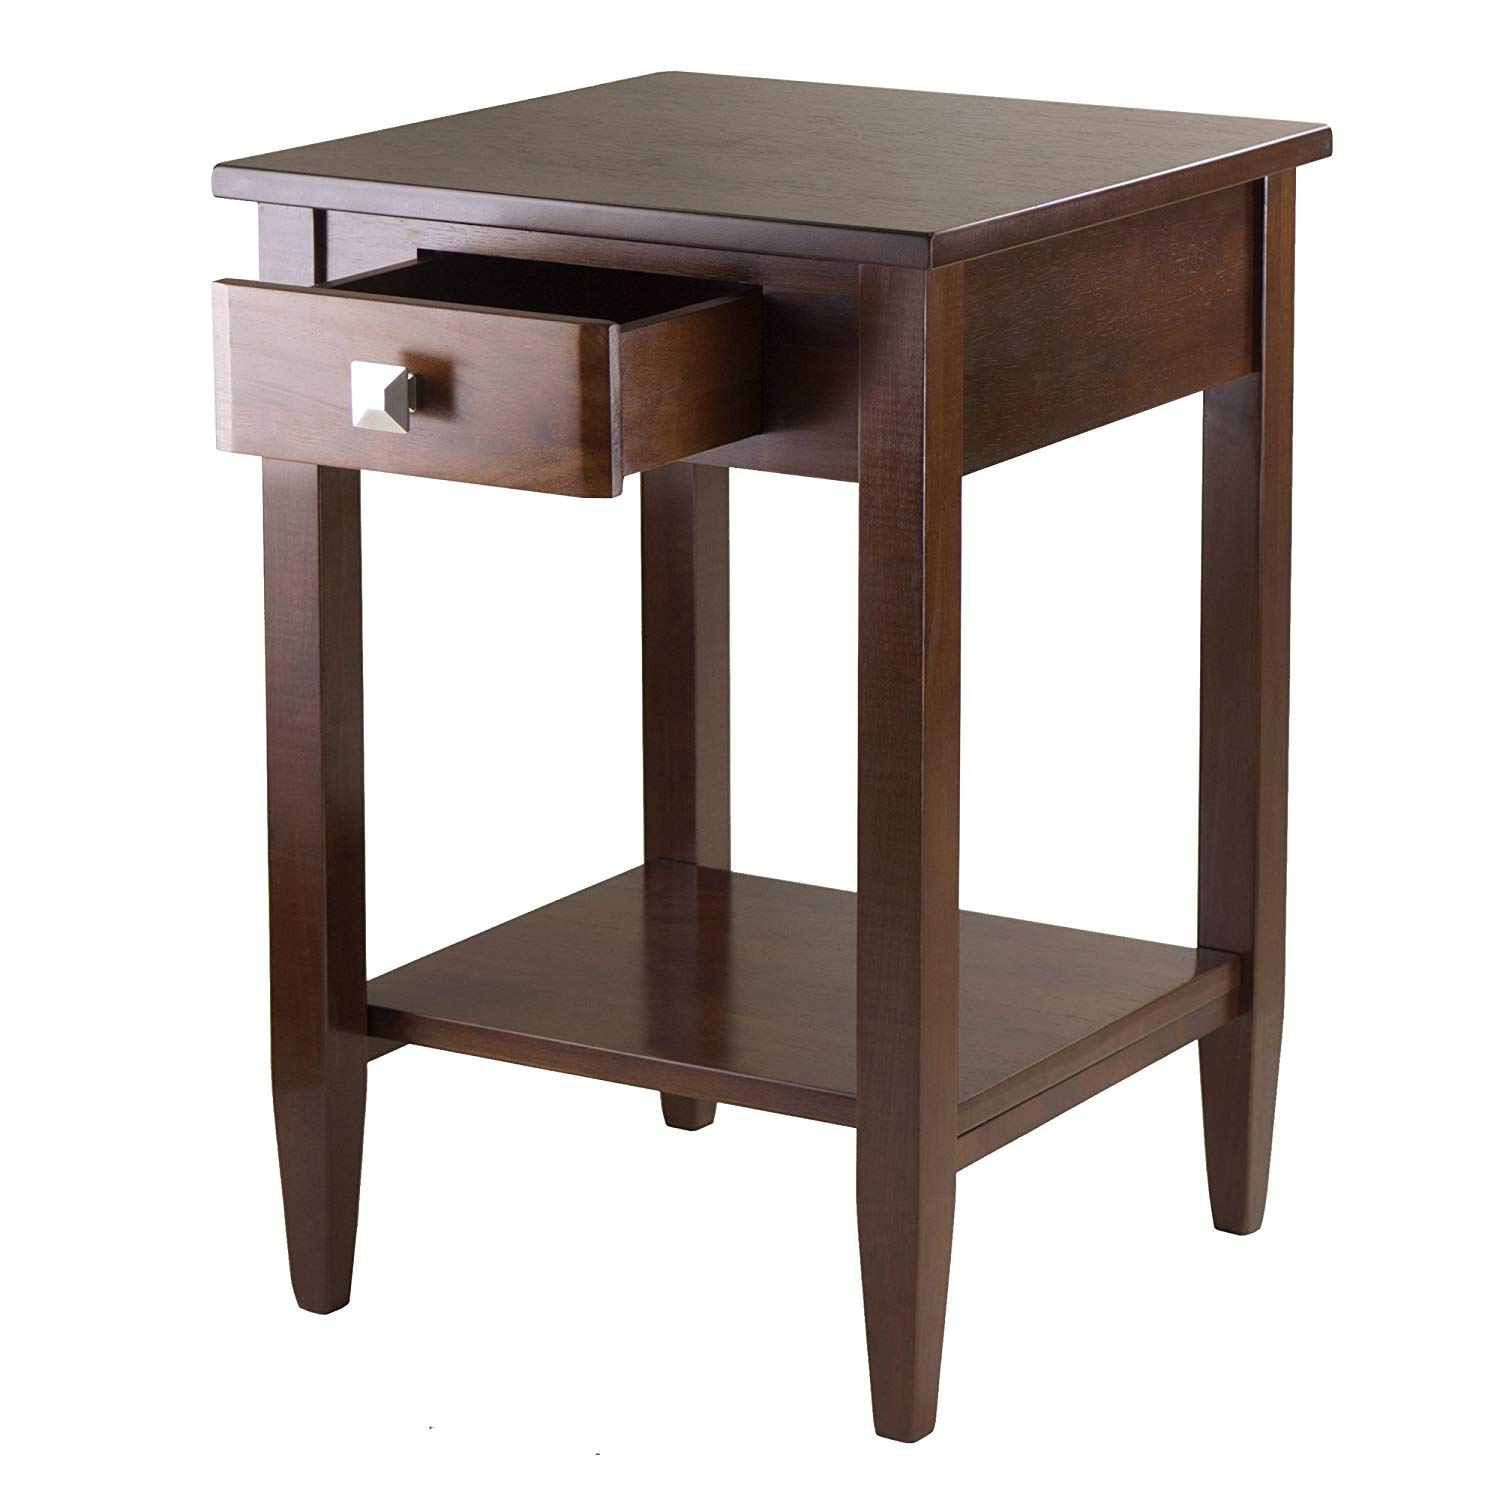 glass solid furniture accent antique bench and storage threshold outdoor decorative room thresh natural teton modern tall kijiji tables white cabinet for gold target gla ott